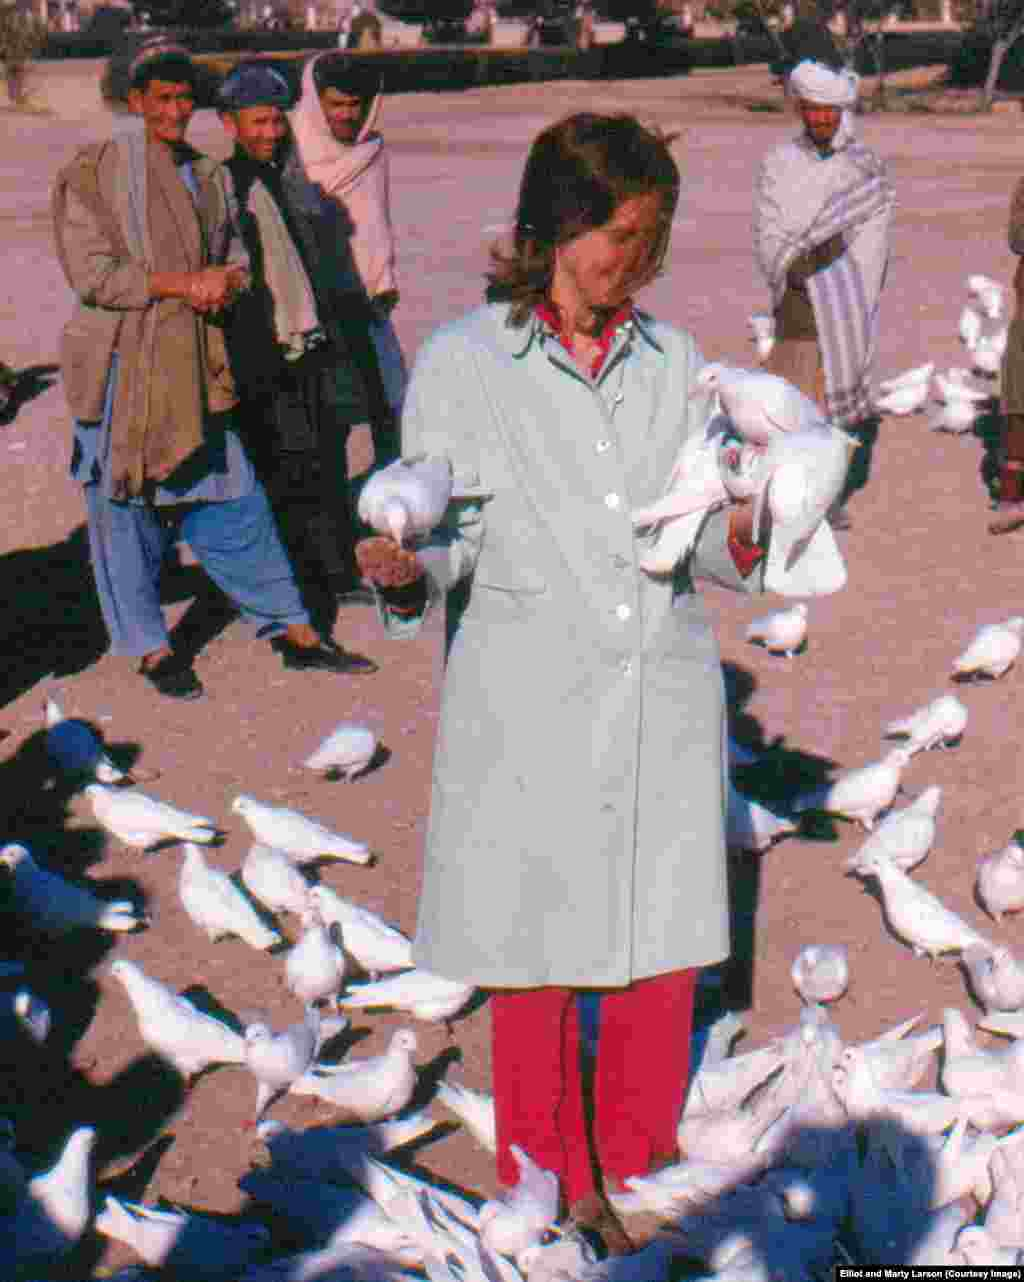 Marty Larson feeding doves at the Blue Mosque in Mazar-e Sharif.